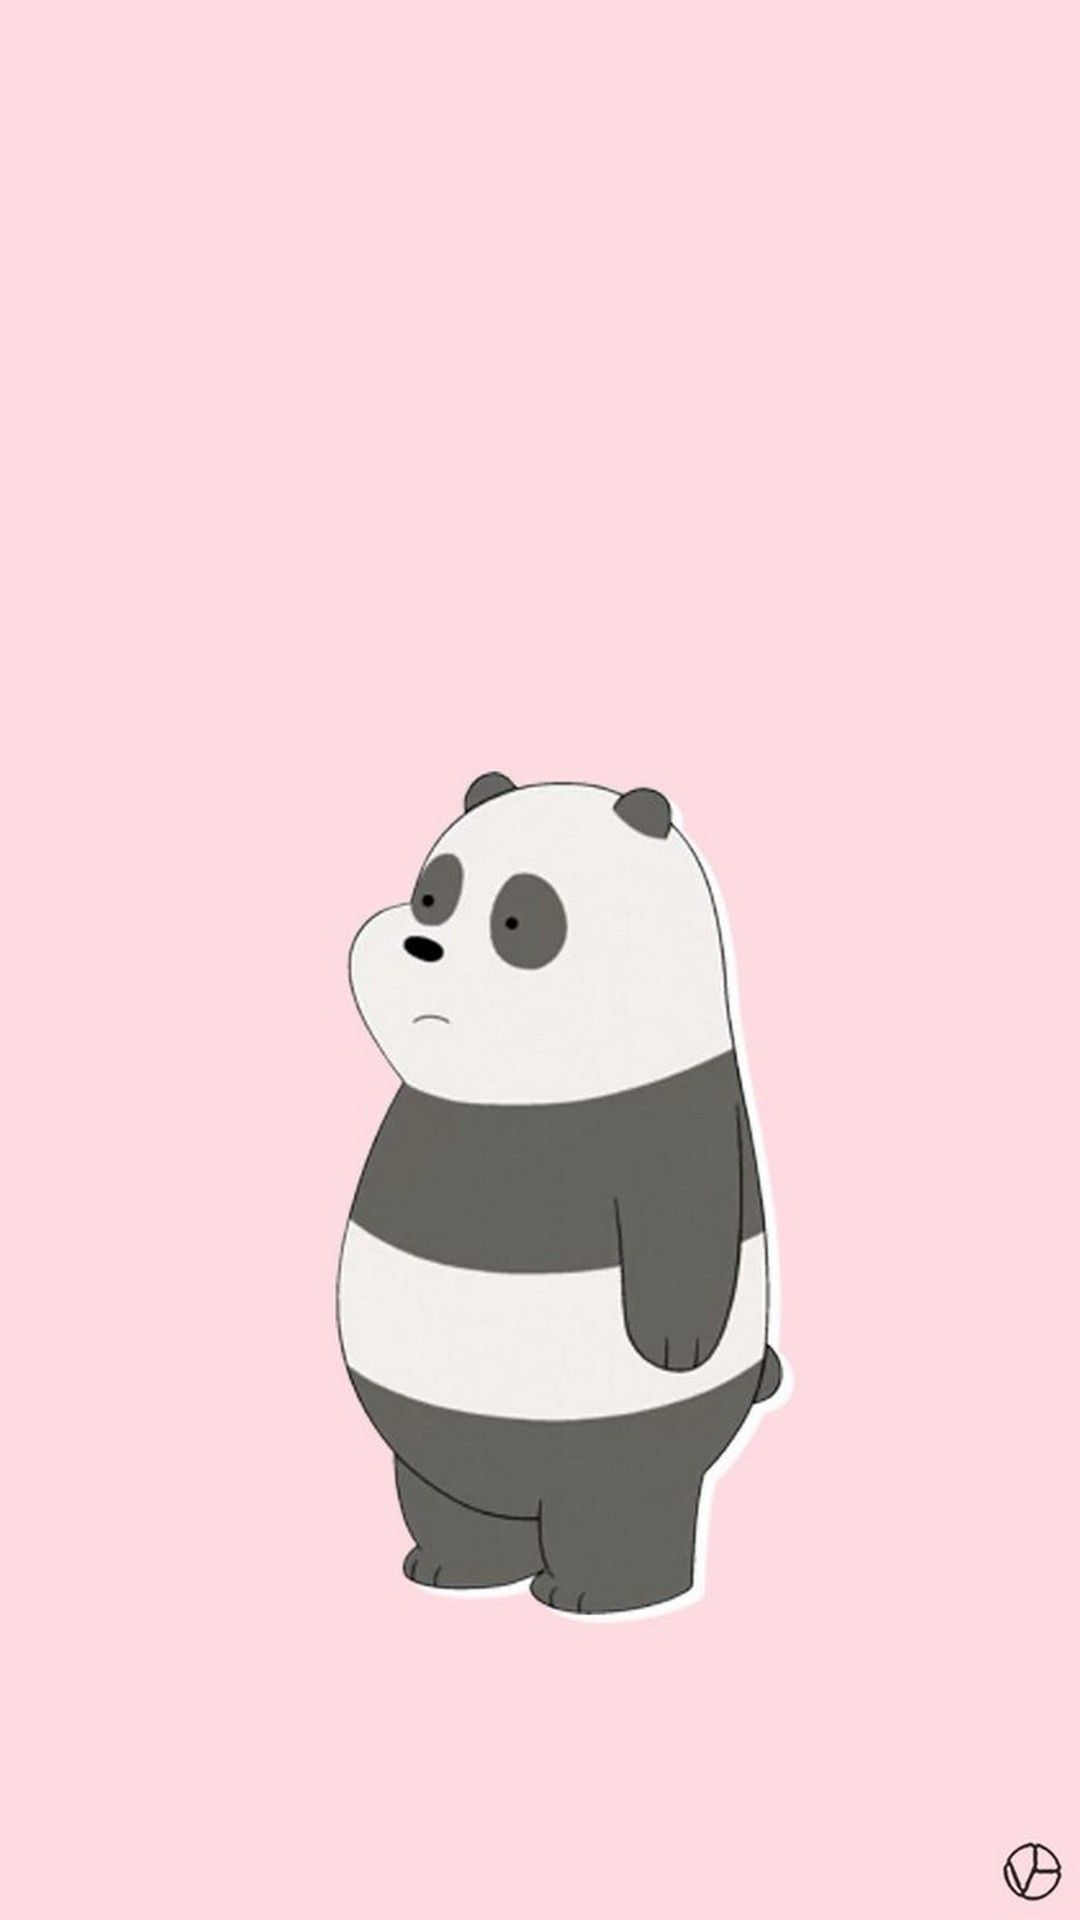 Small Cute Cartoon Panda Wallpapers Top Free Small Cute